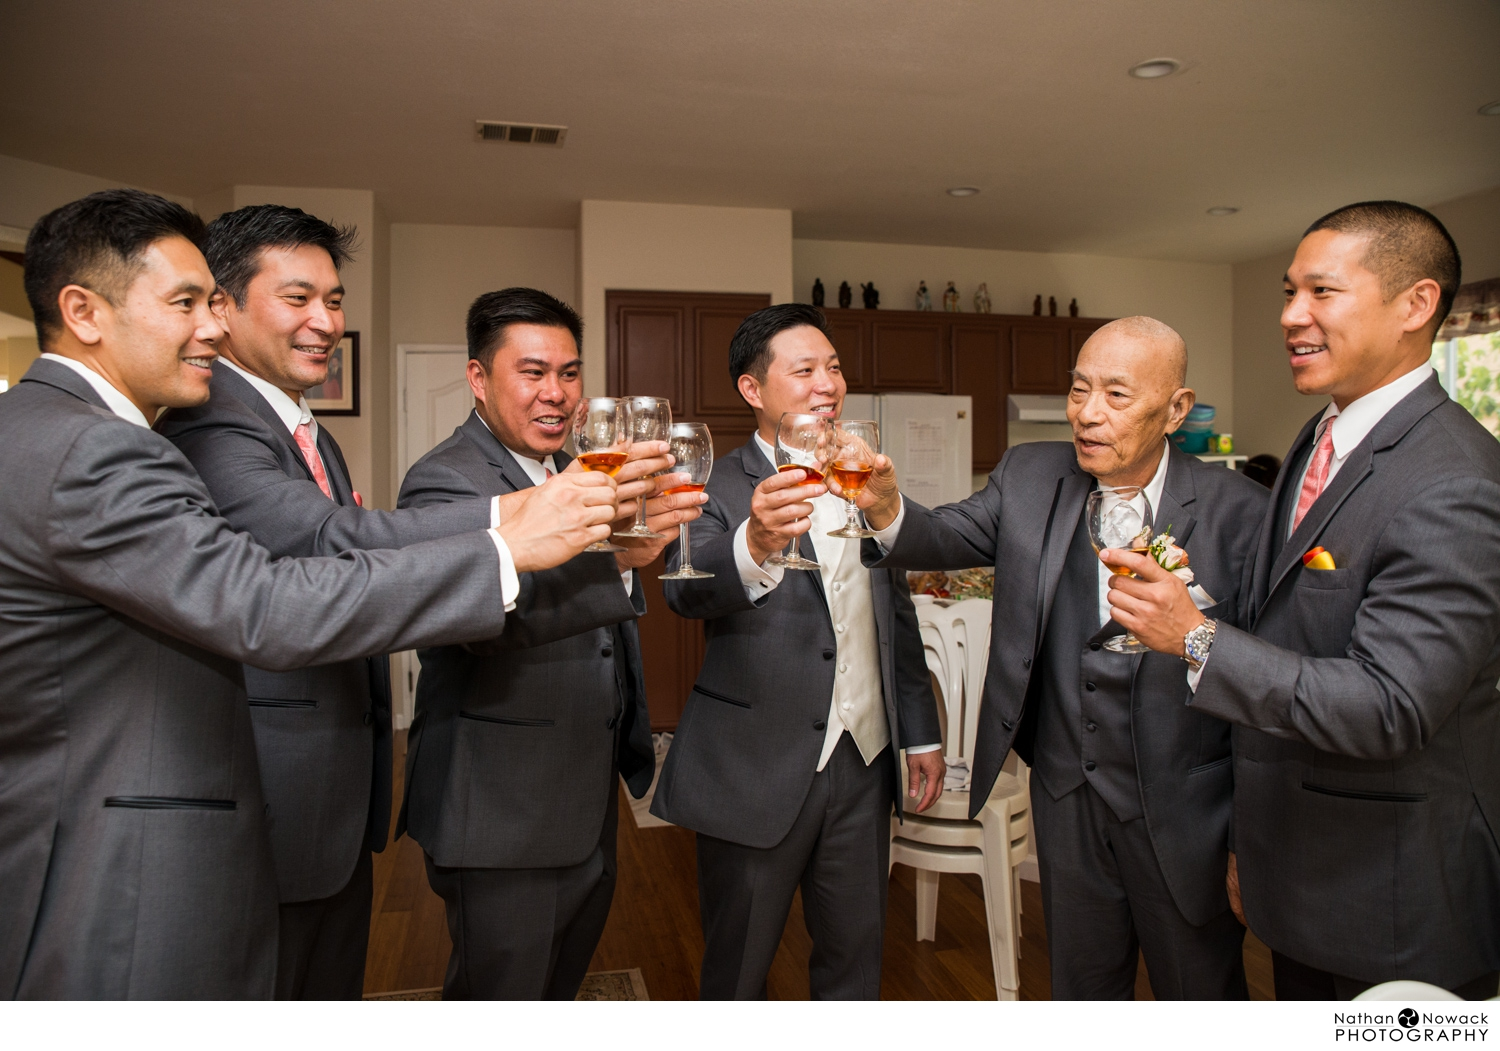 BowersMuseum-wedding-orange-county-santa-ana-reception_0016